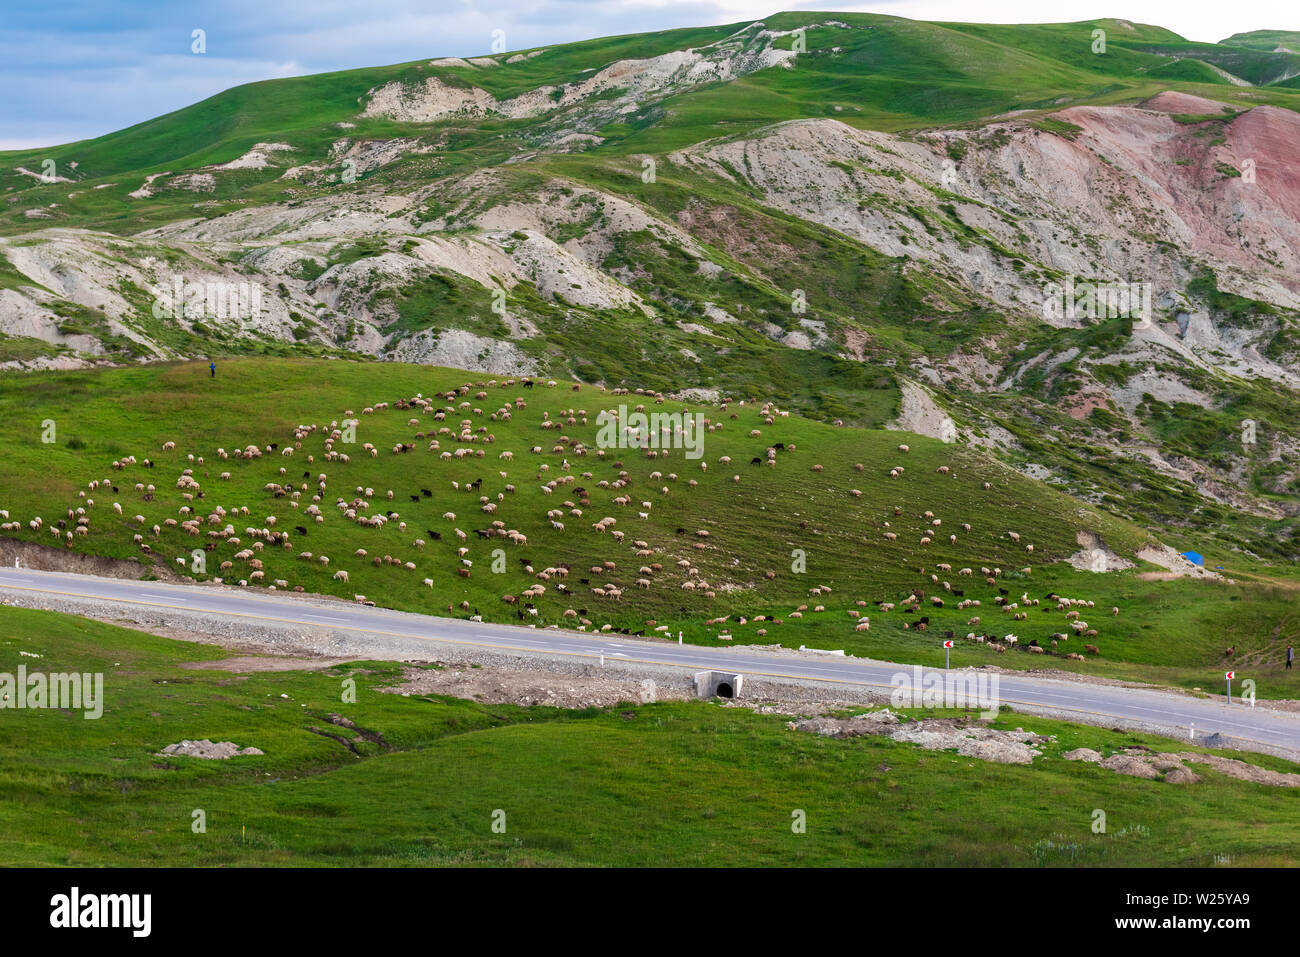 A flock of sheep on the mountainside - Stock Image